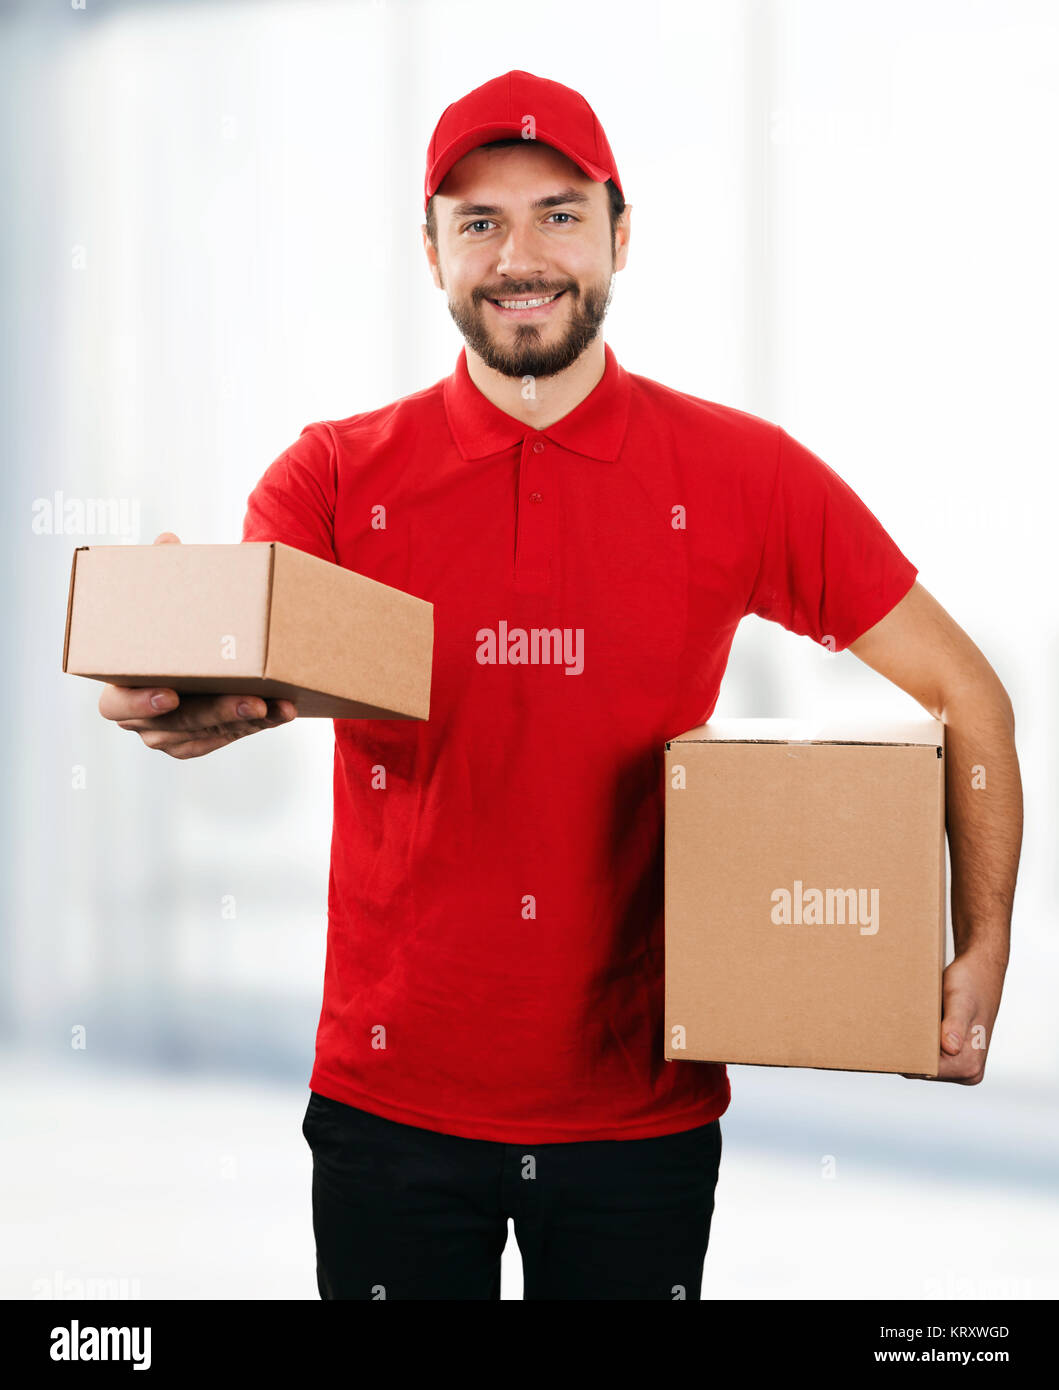 delivery service - young smiling deliveryman with cardboard boxes - Stock Image